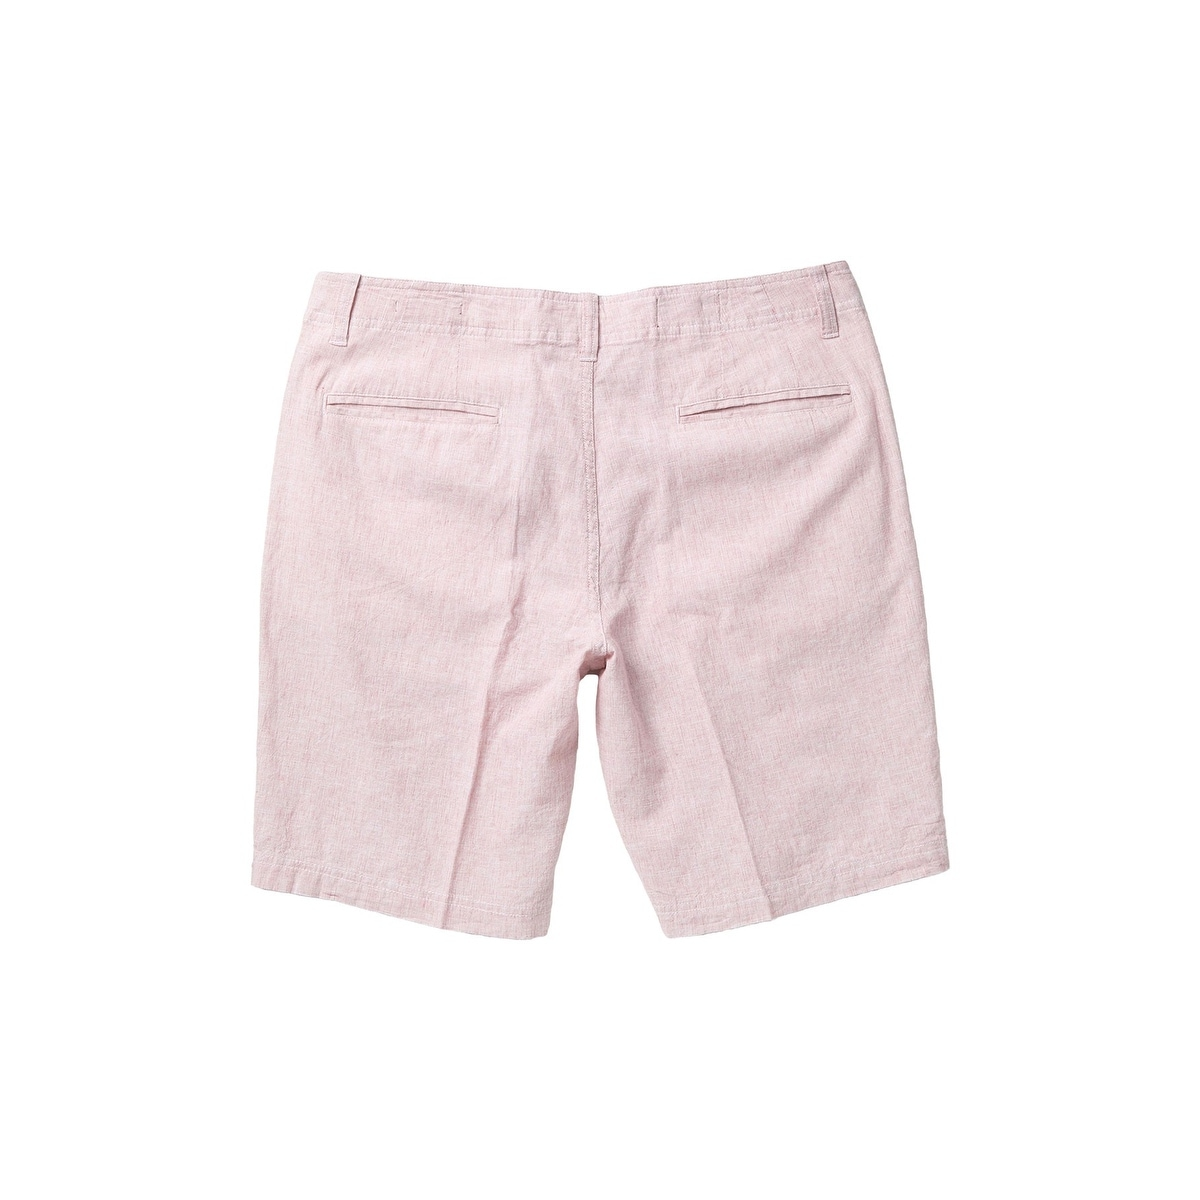 Wallin & Bros Mens Shorts Red Size 30 Khakis Chinos Linen Flat-Front - On  Sale - Overstock - 32430630